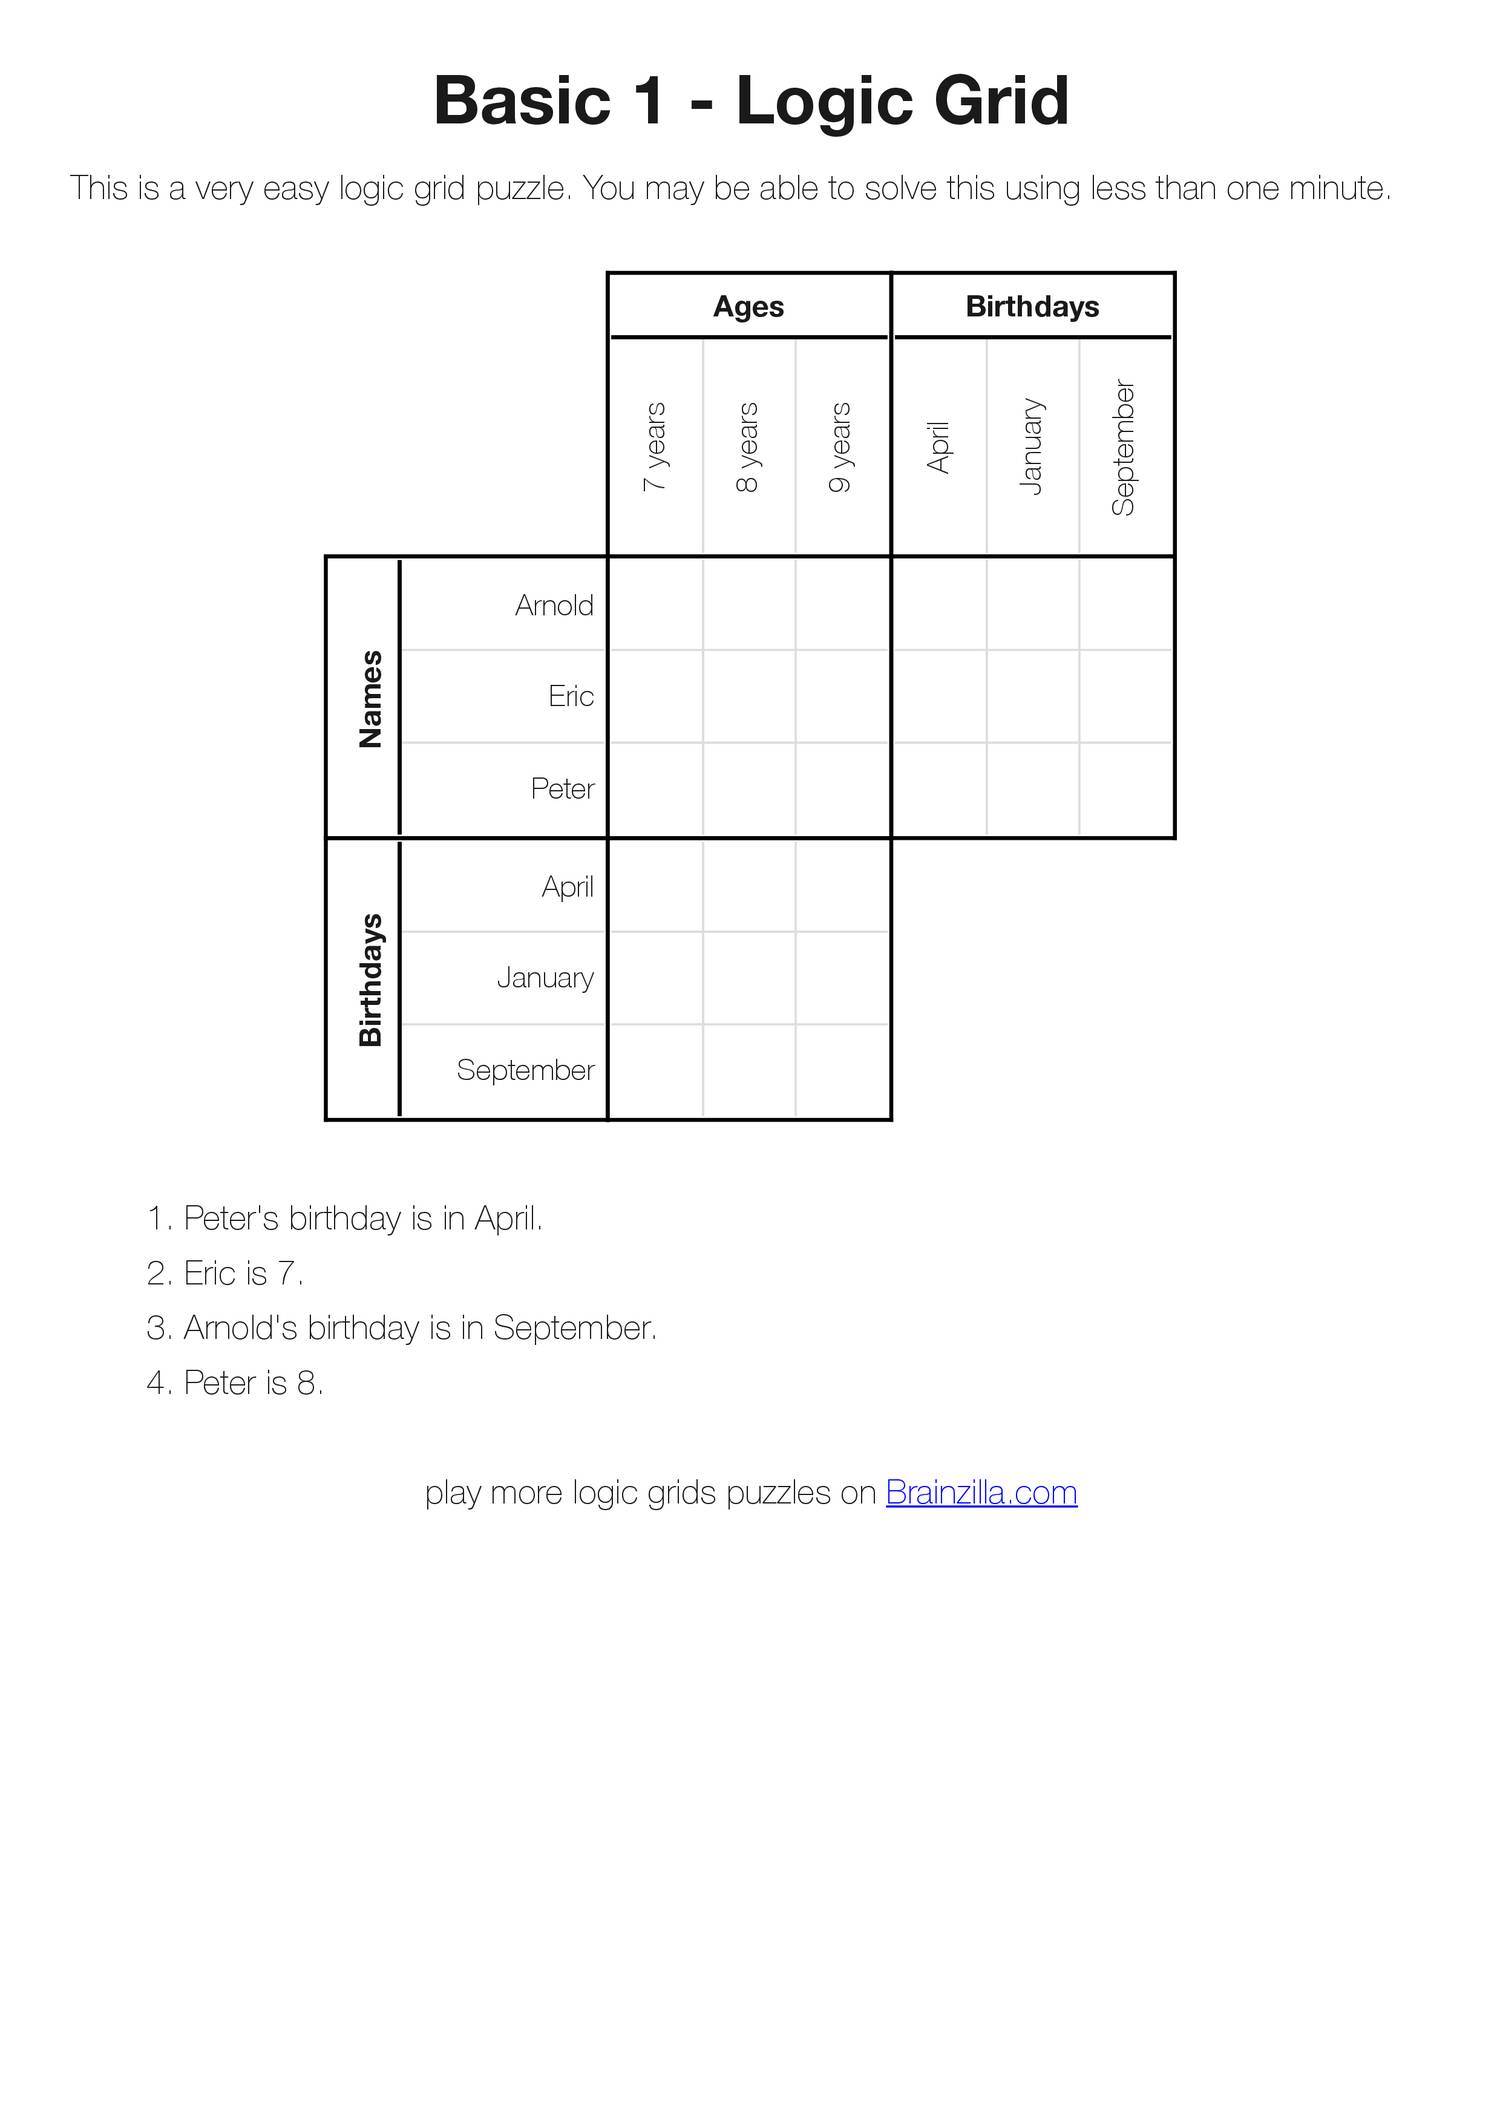 image about Printable Logic Puzzles for Adults named Printable Logic Grid Puzzles (Brainzilla).pdf DocDroid